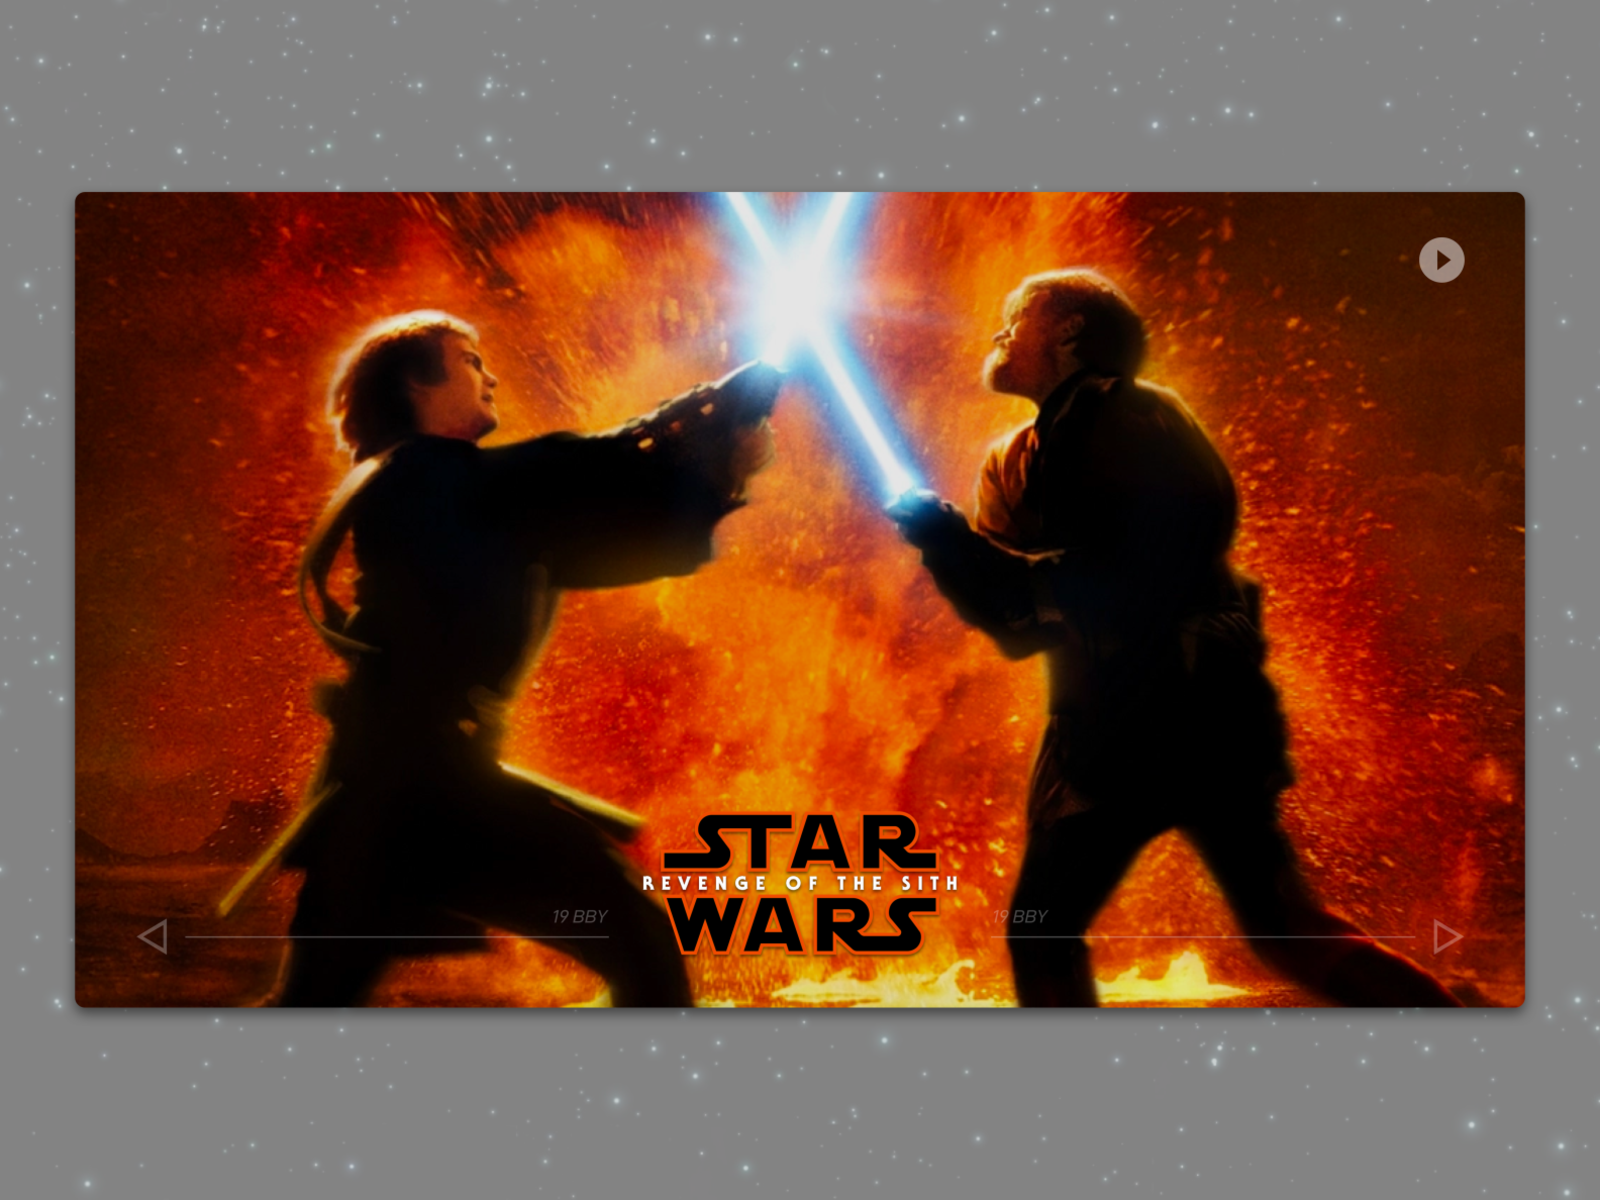 1 12 Shots For Practice Star Wars Revenge Of The Sith By Alp Turgut On Dribbble